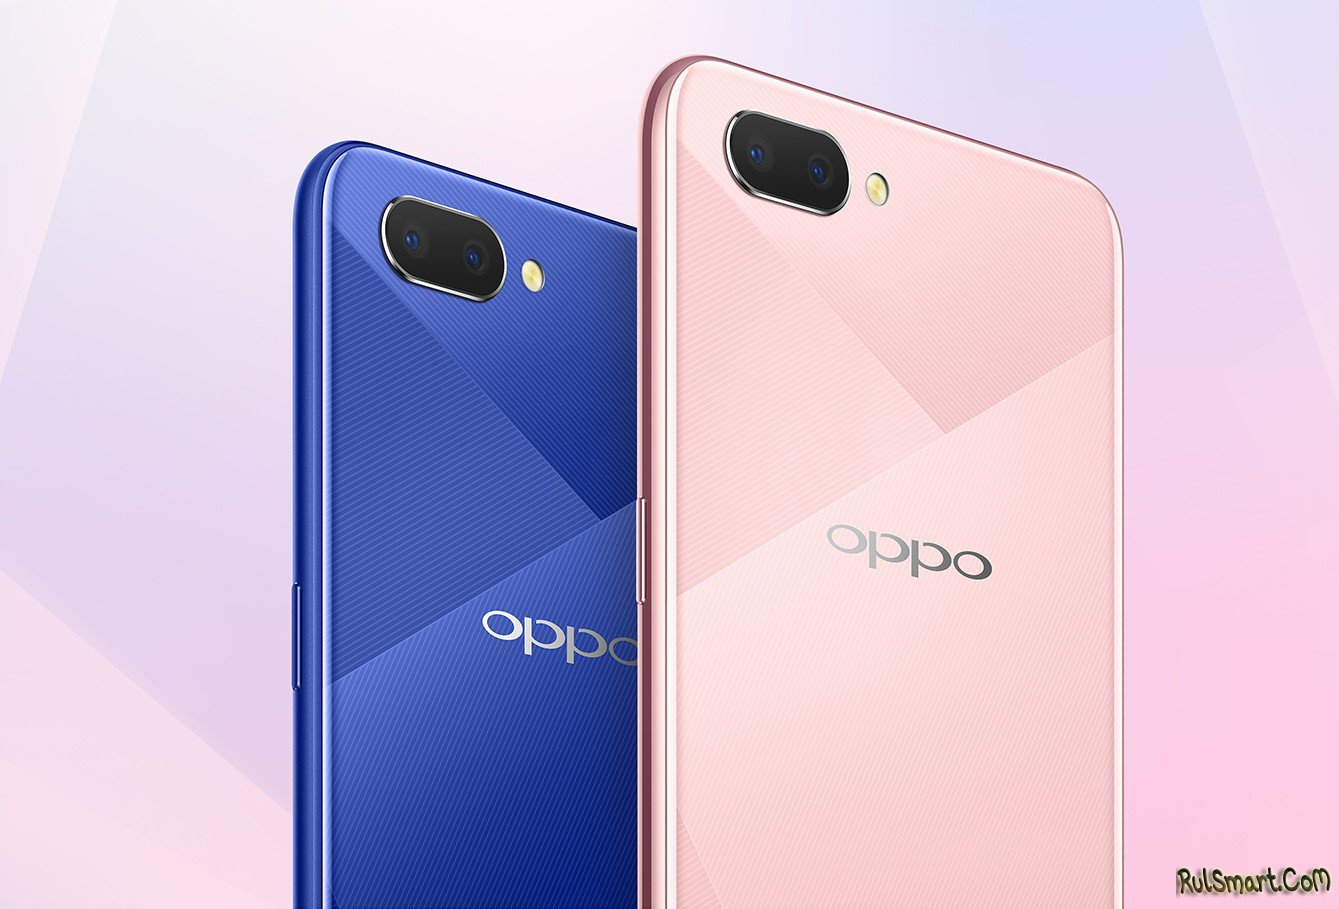 Oppo A5 specifications, features